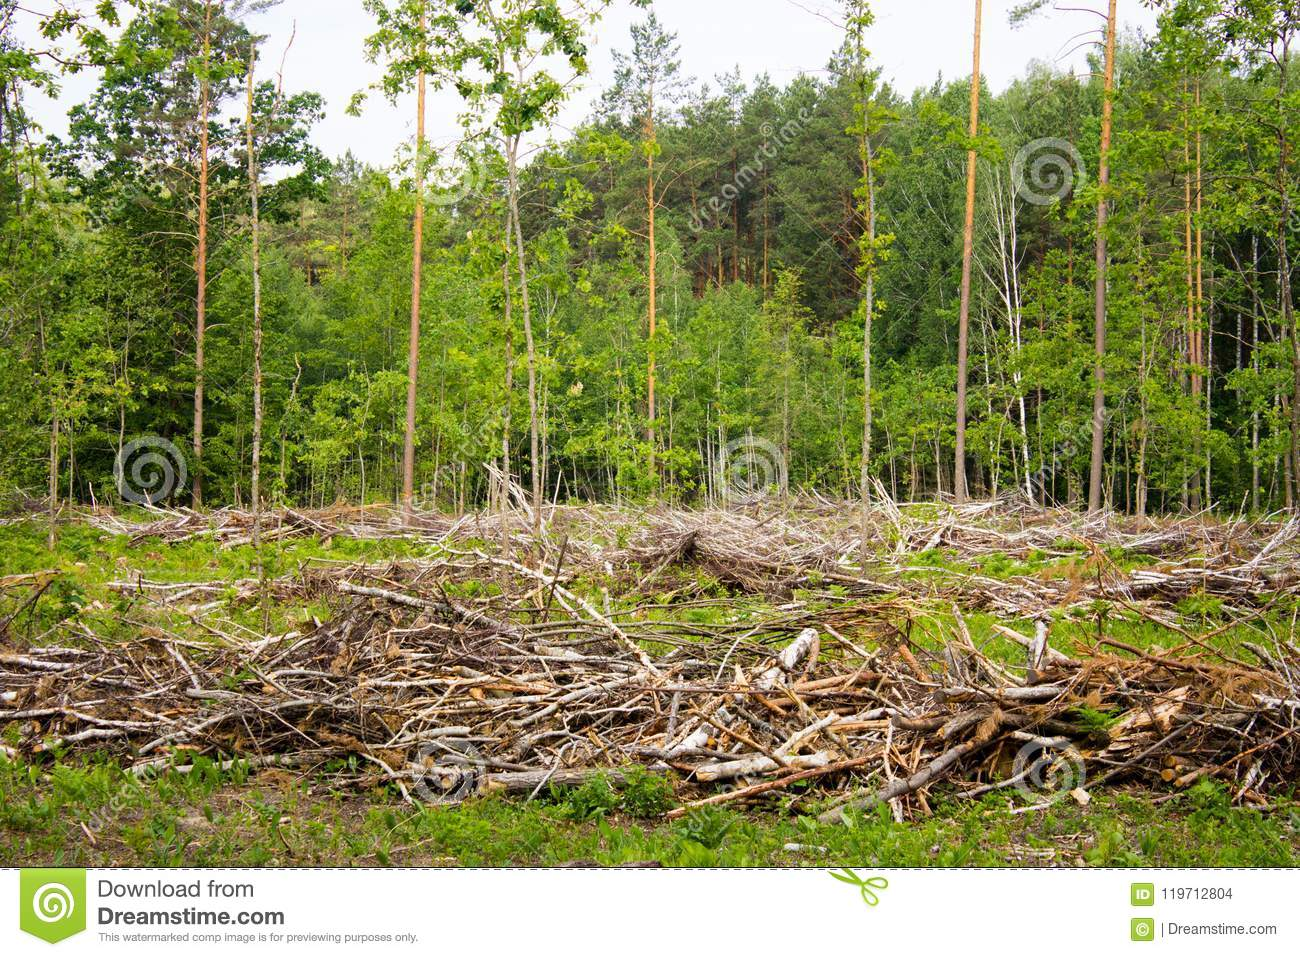 chopped tree branches stock photo. image of trees, green - 119712804